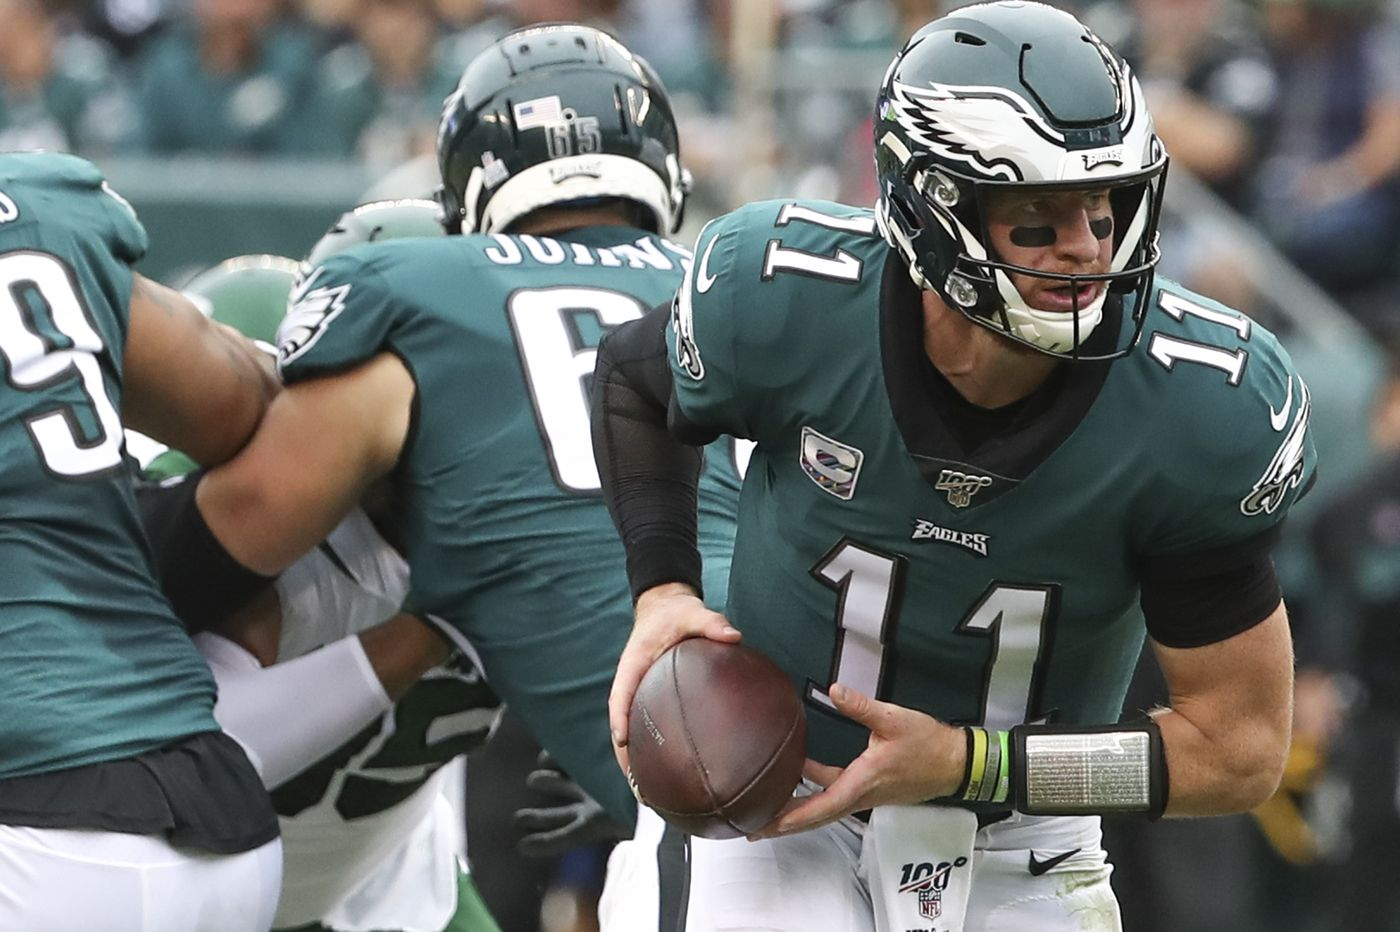 Eagles-Jets Up-Down Drill: Defense puts together stellar outing, but offense gets mixed reviews